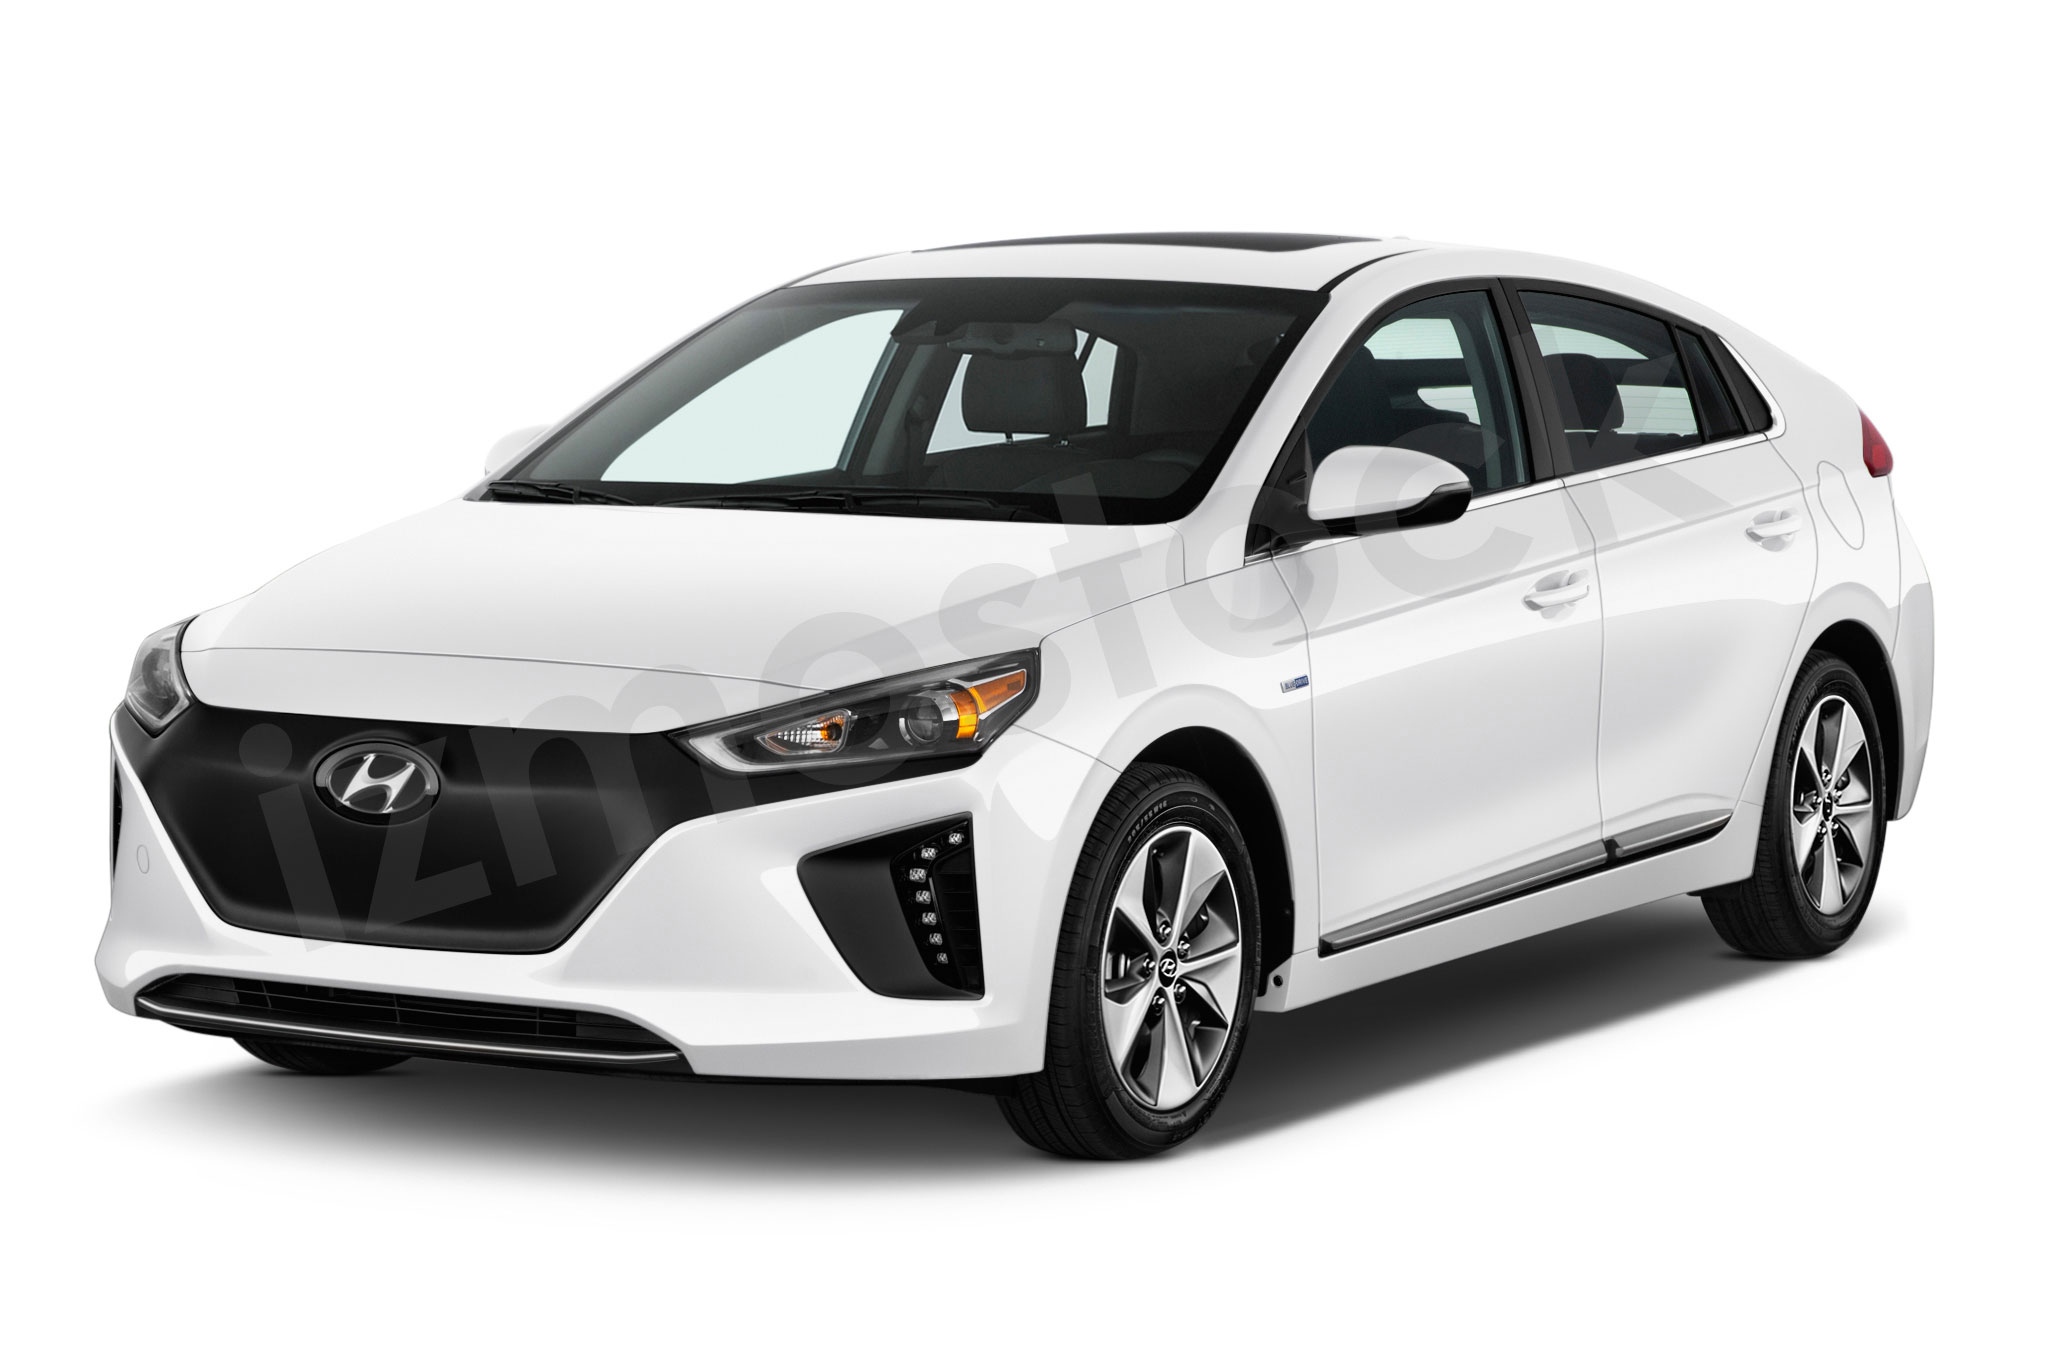 hyundai ioniq 2017 images review price interior video specs and configuration it s. Black Bedroom Furniture Sets. Home Design Ideas